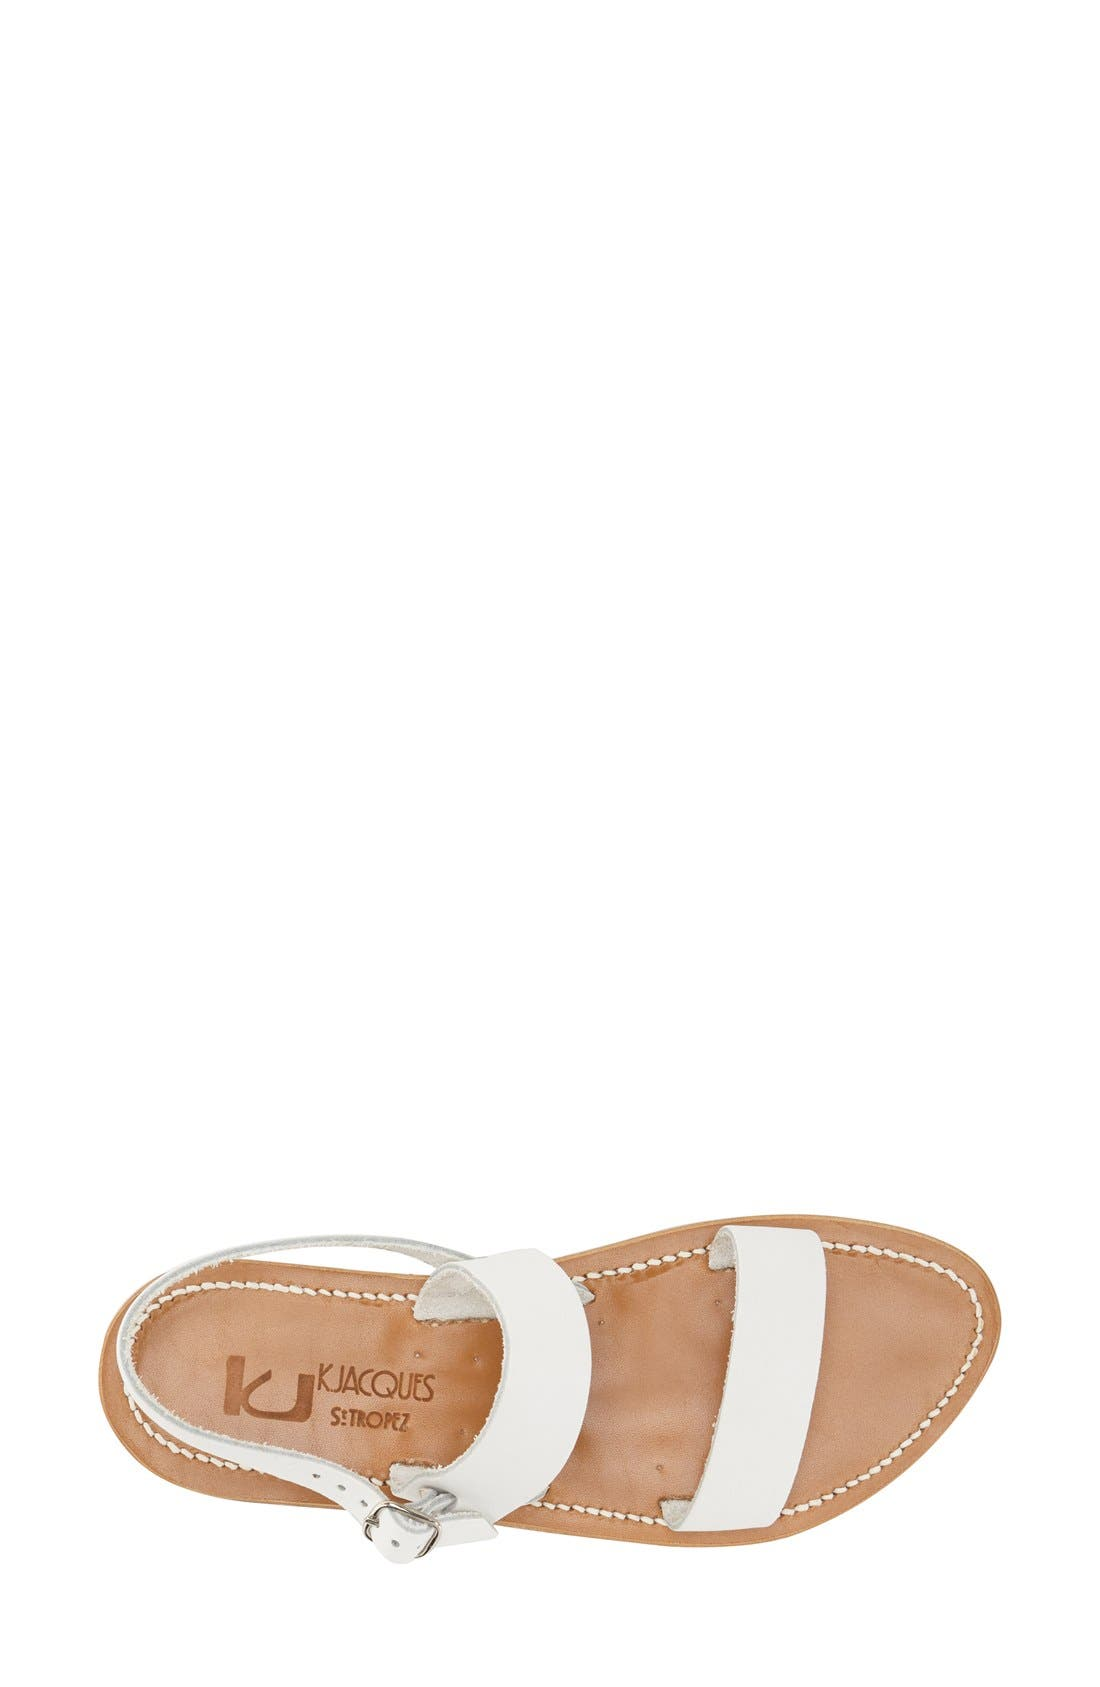 K Jacques St. Tropez Flat 'Barigoule' Vachetta Leather Sandal,                             Alternate thumbnail 4, color,                             101